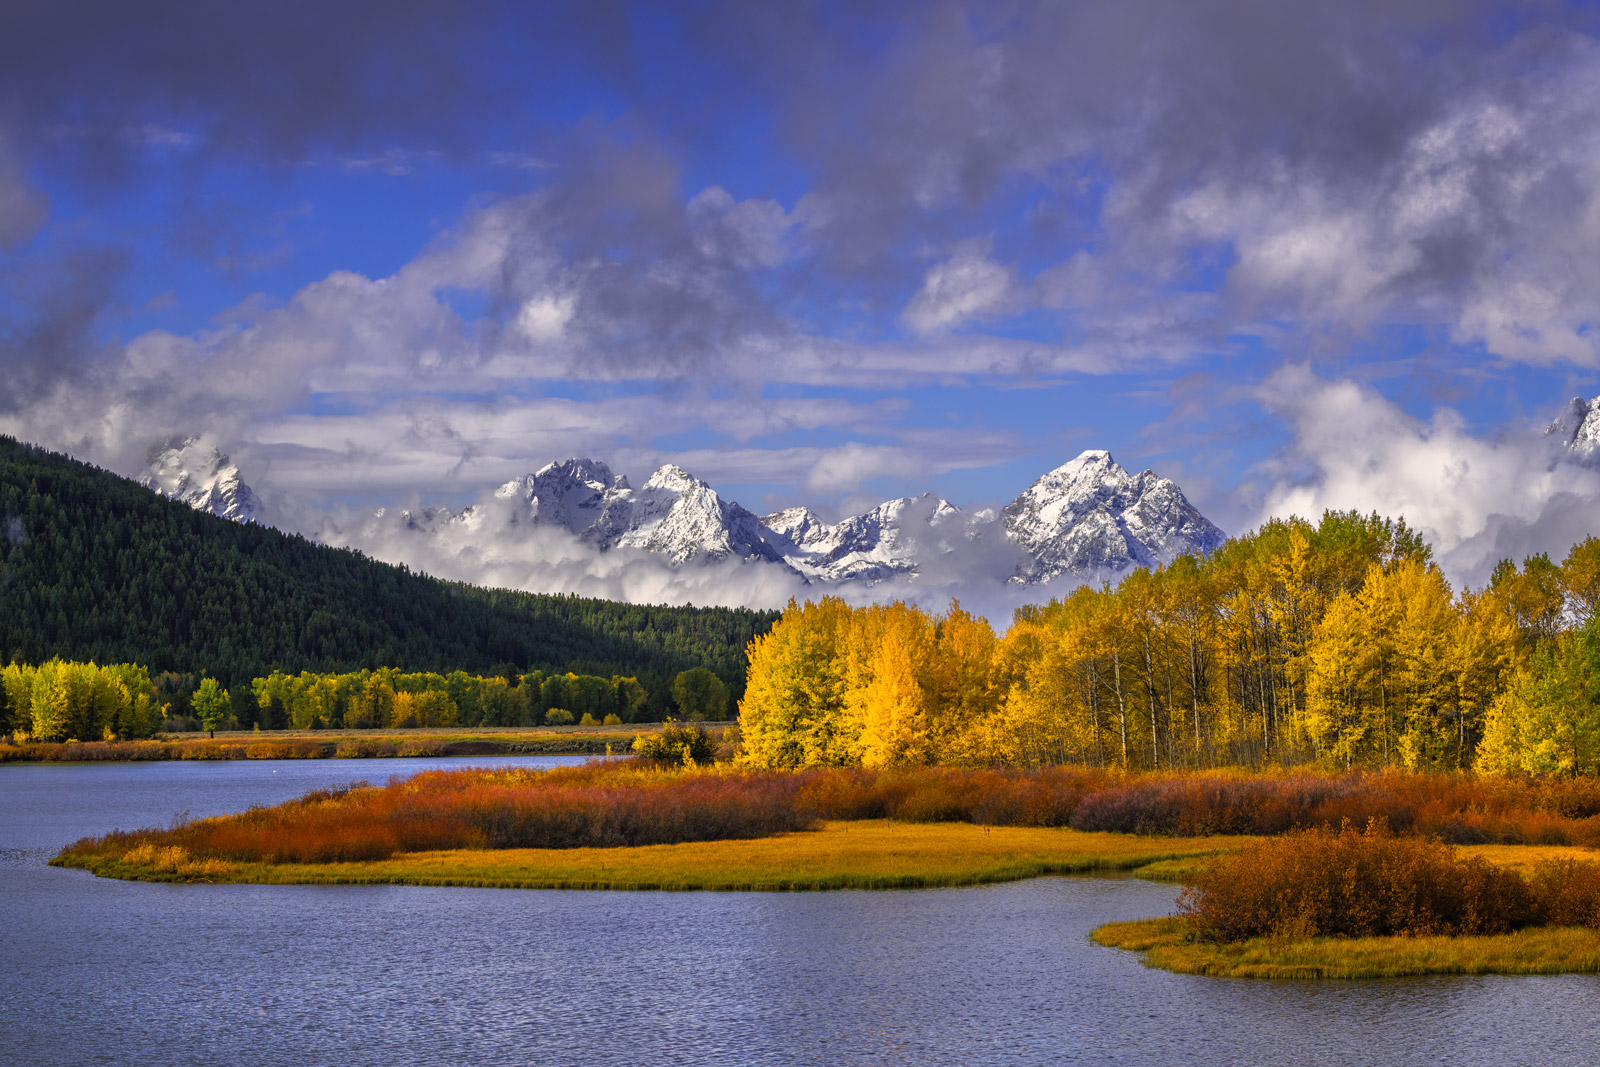 Wyoming, Grand Teton, National Park, Snake River, Fall, Winter, limited edition, photograph, fine art, landscape, photo